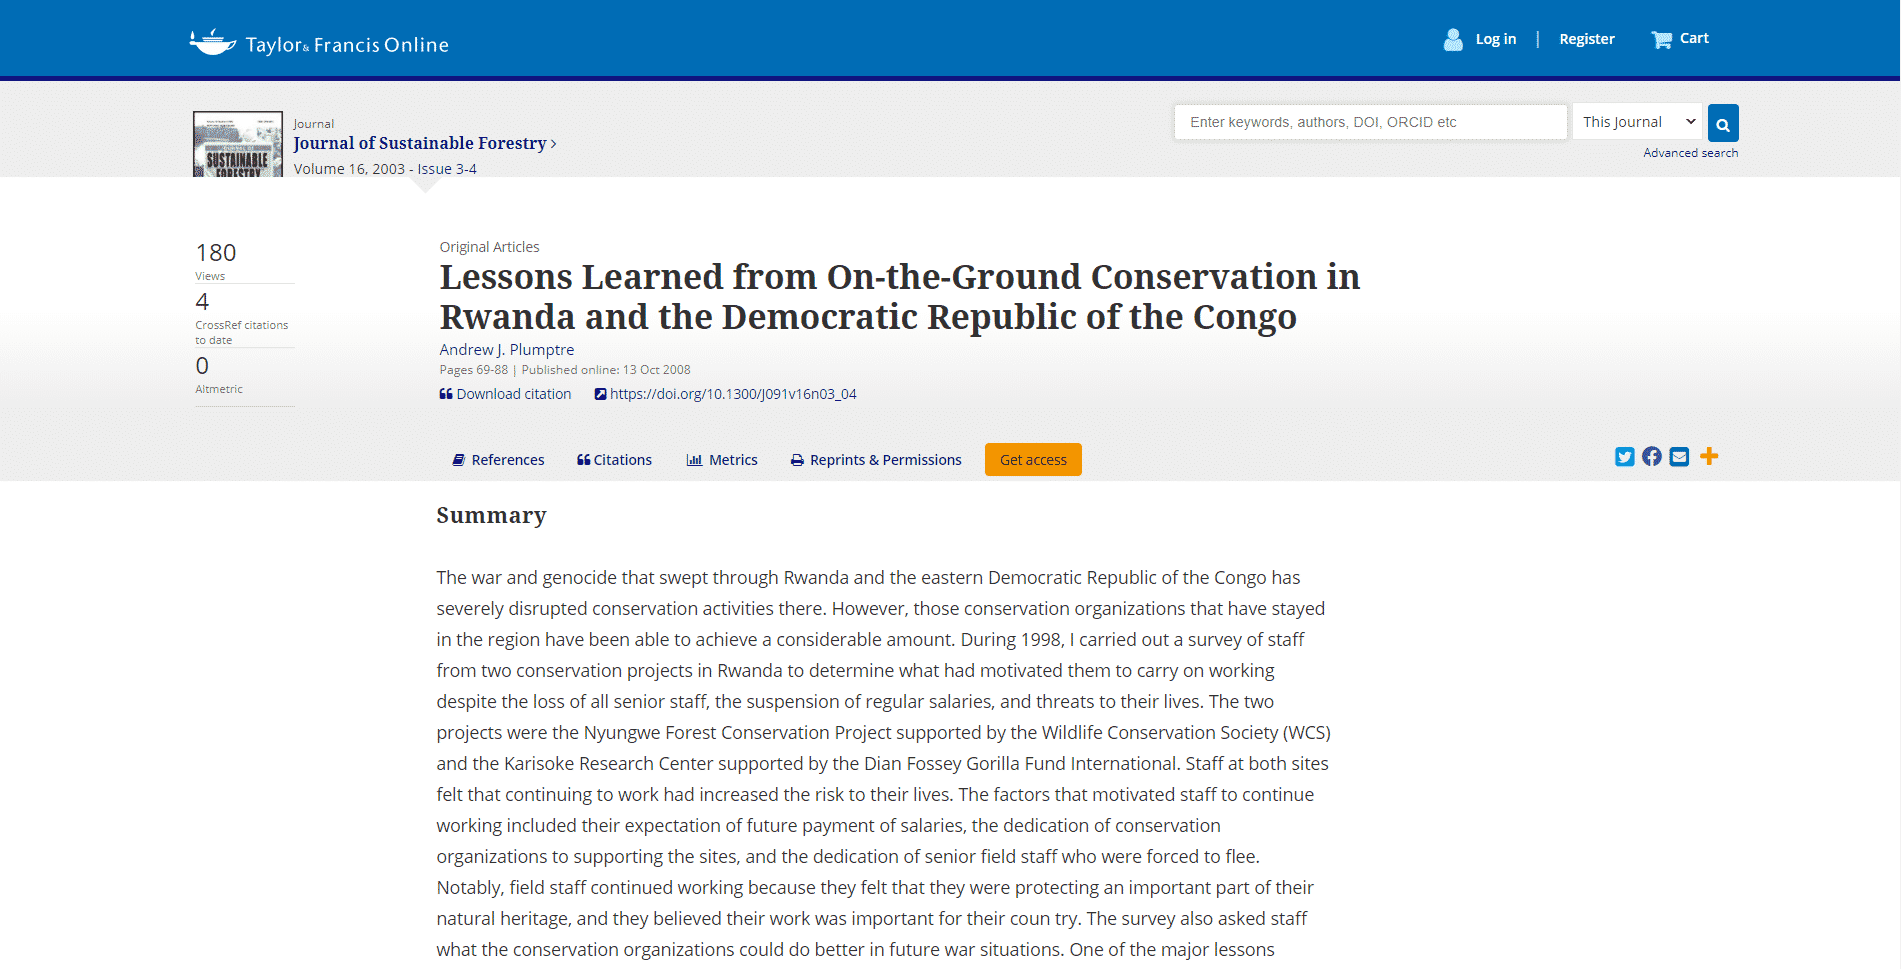 tandfonline Learn Conservation Lessons Online